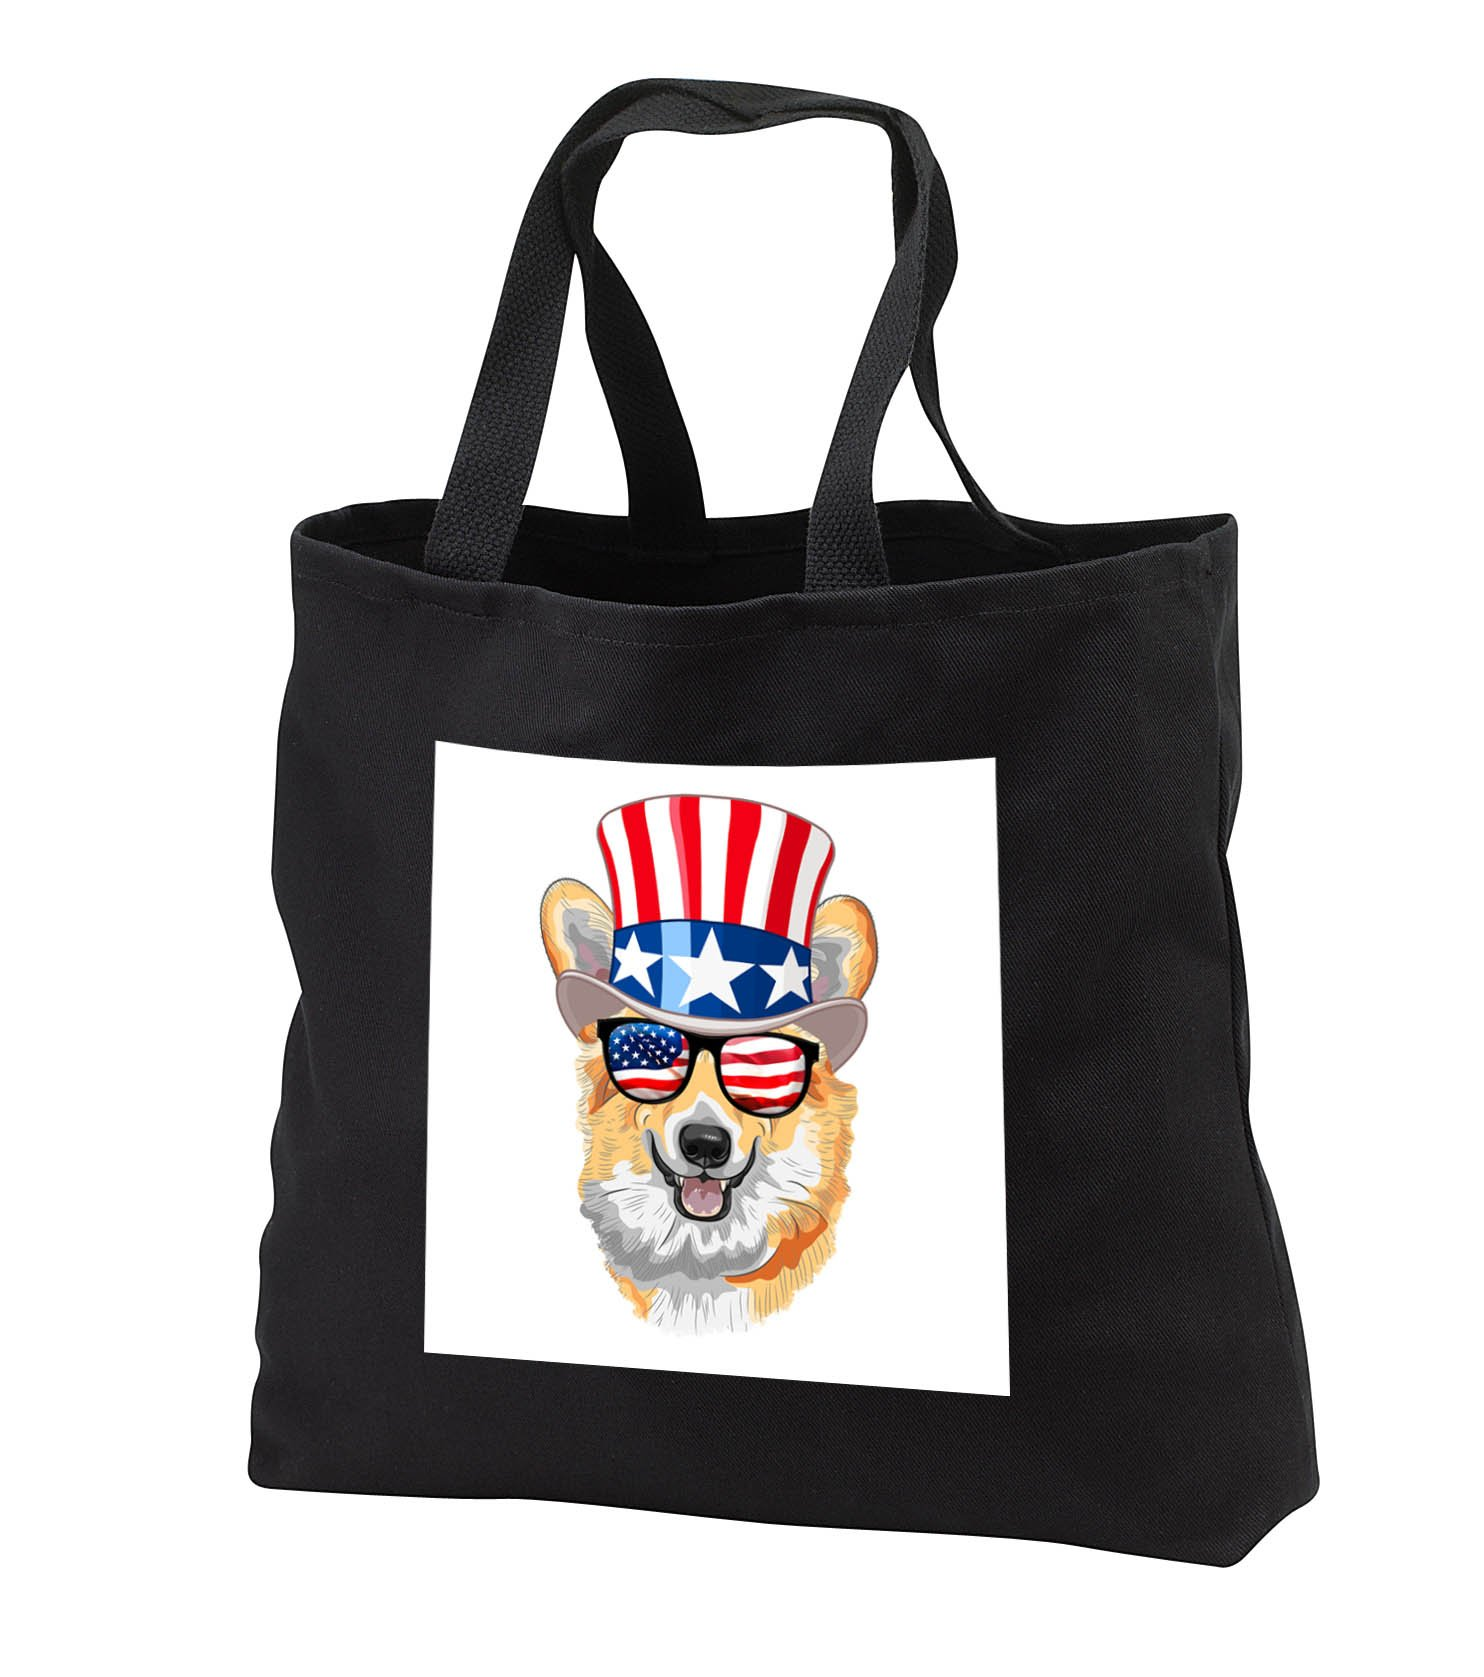 Patriotic American Dogs - Corgi Dog With American Flag Sunglasses and Top hat - Tote Bags - Black Tote Bag 14w x 14h x 3d (tb_282707_1)